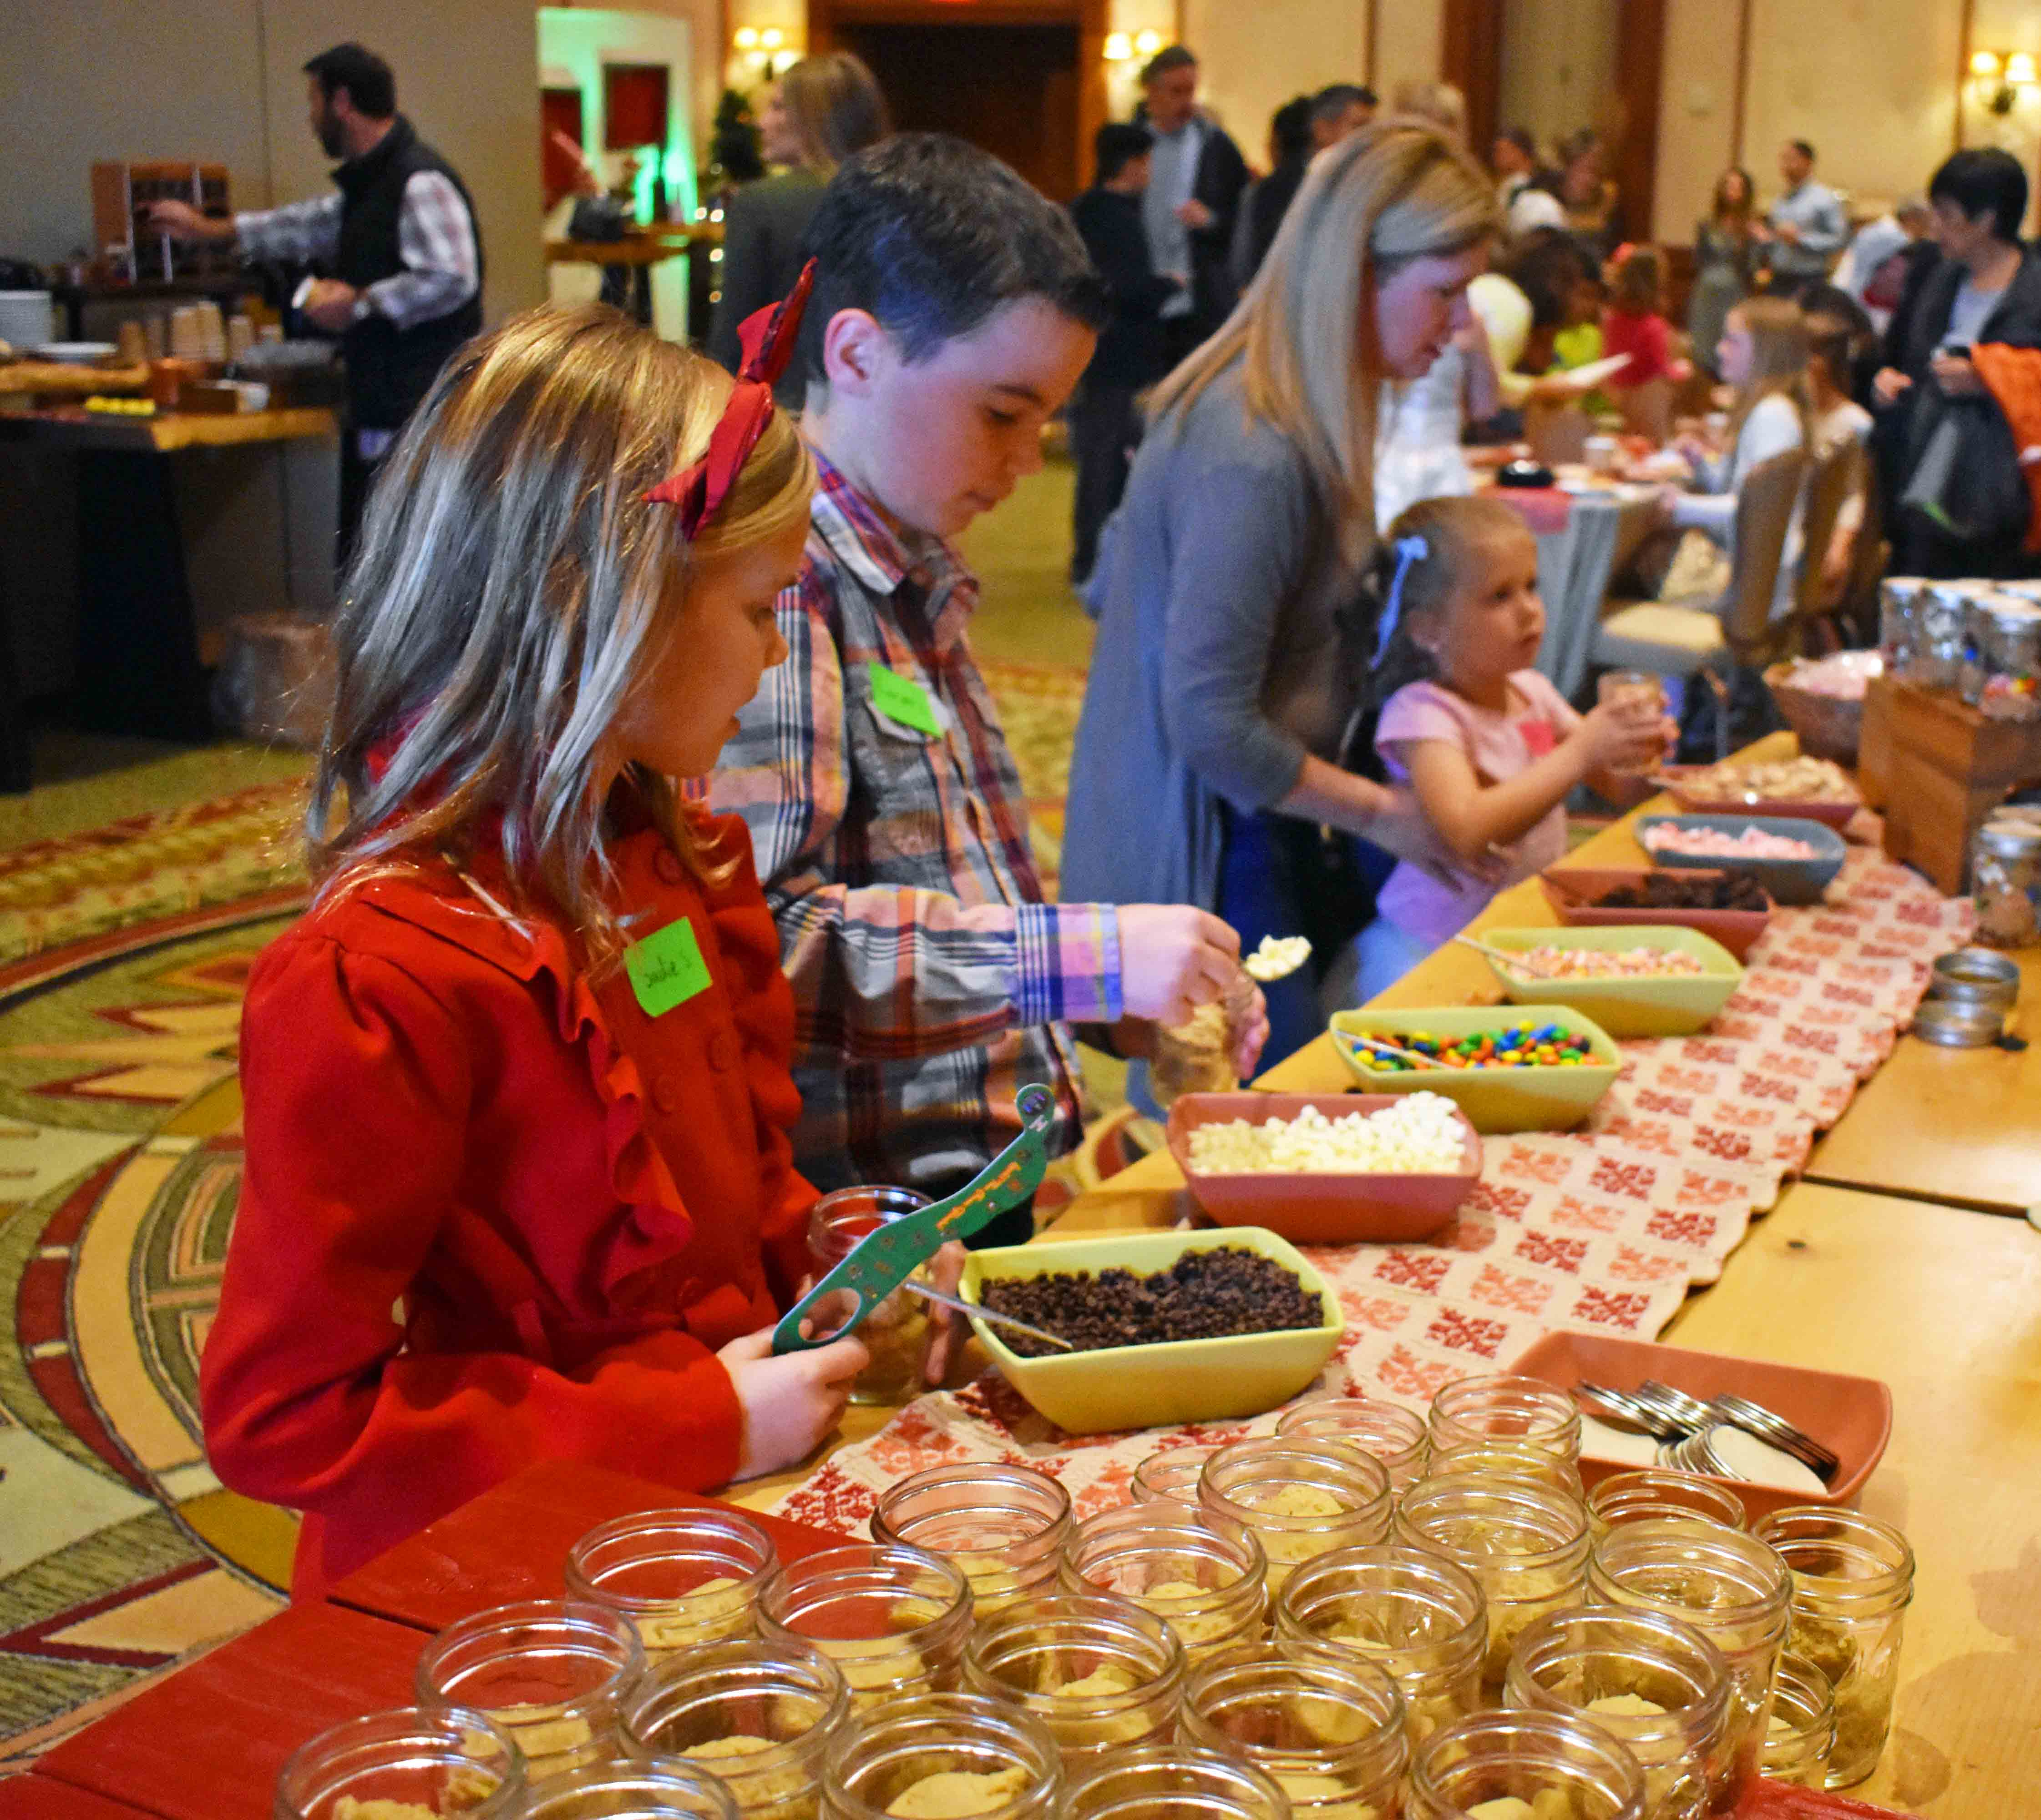 Arizona Four Seasons Christmas. Cookies with Claus Event at Four Seasons Scottsdale.